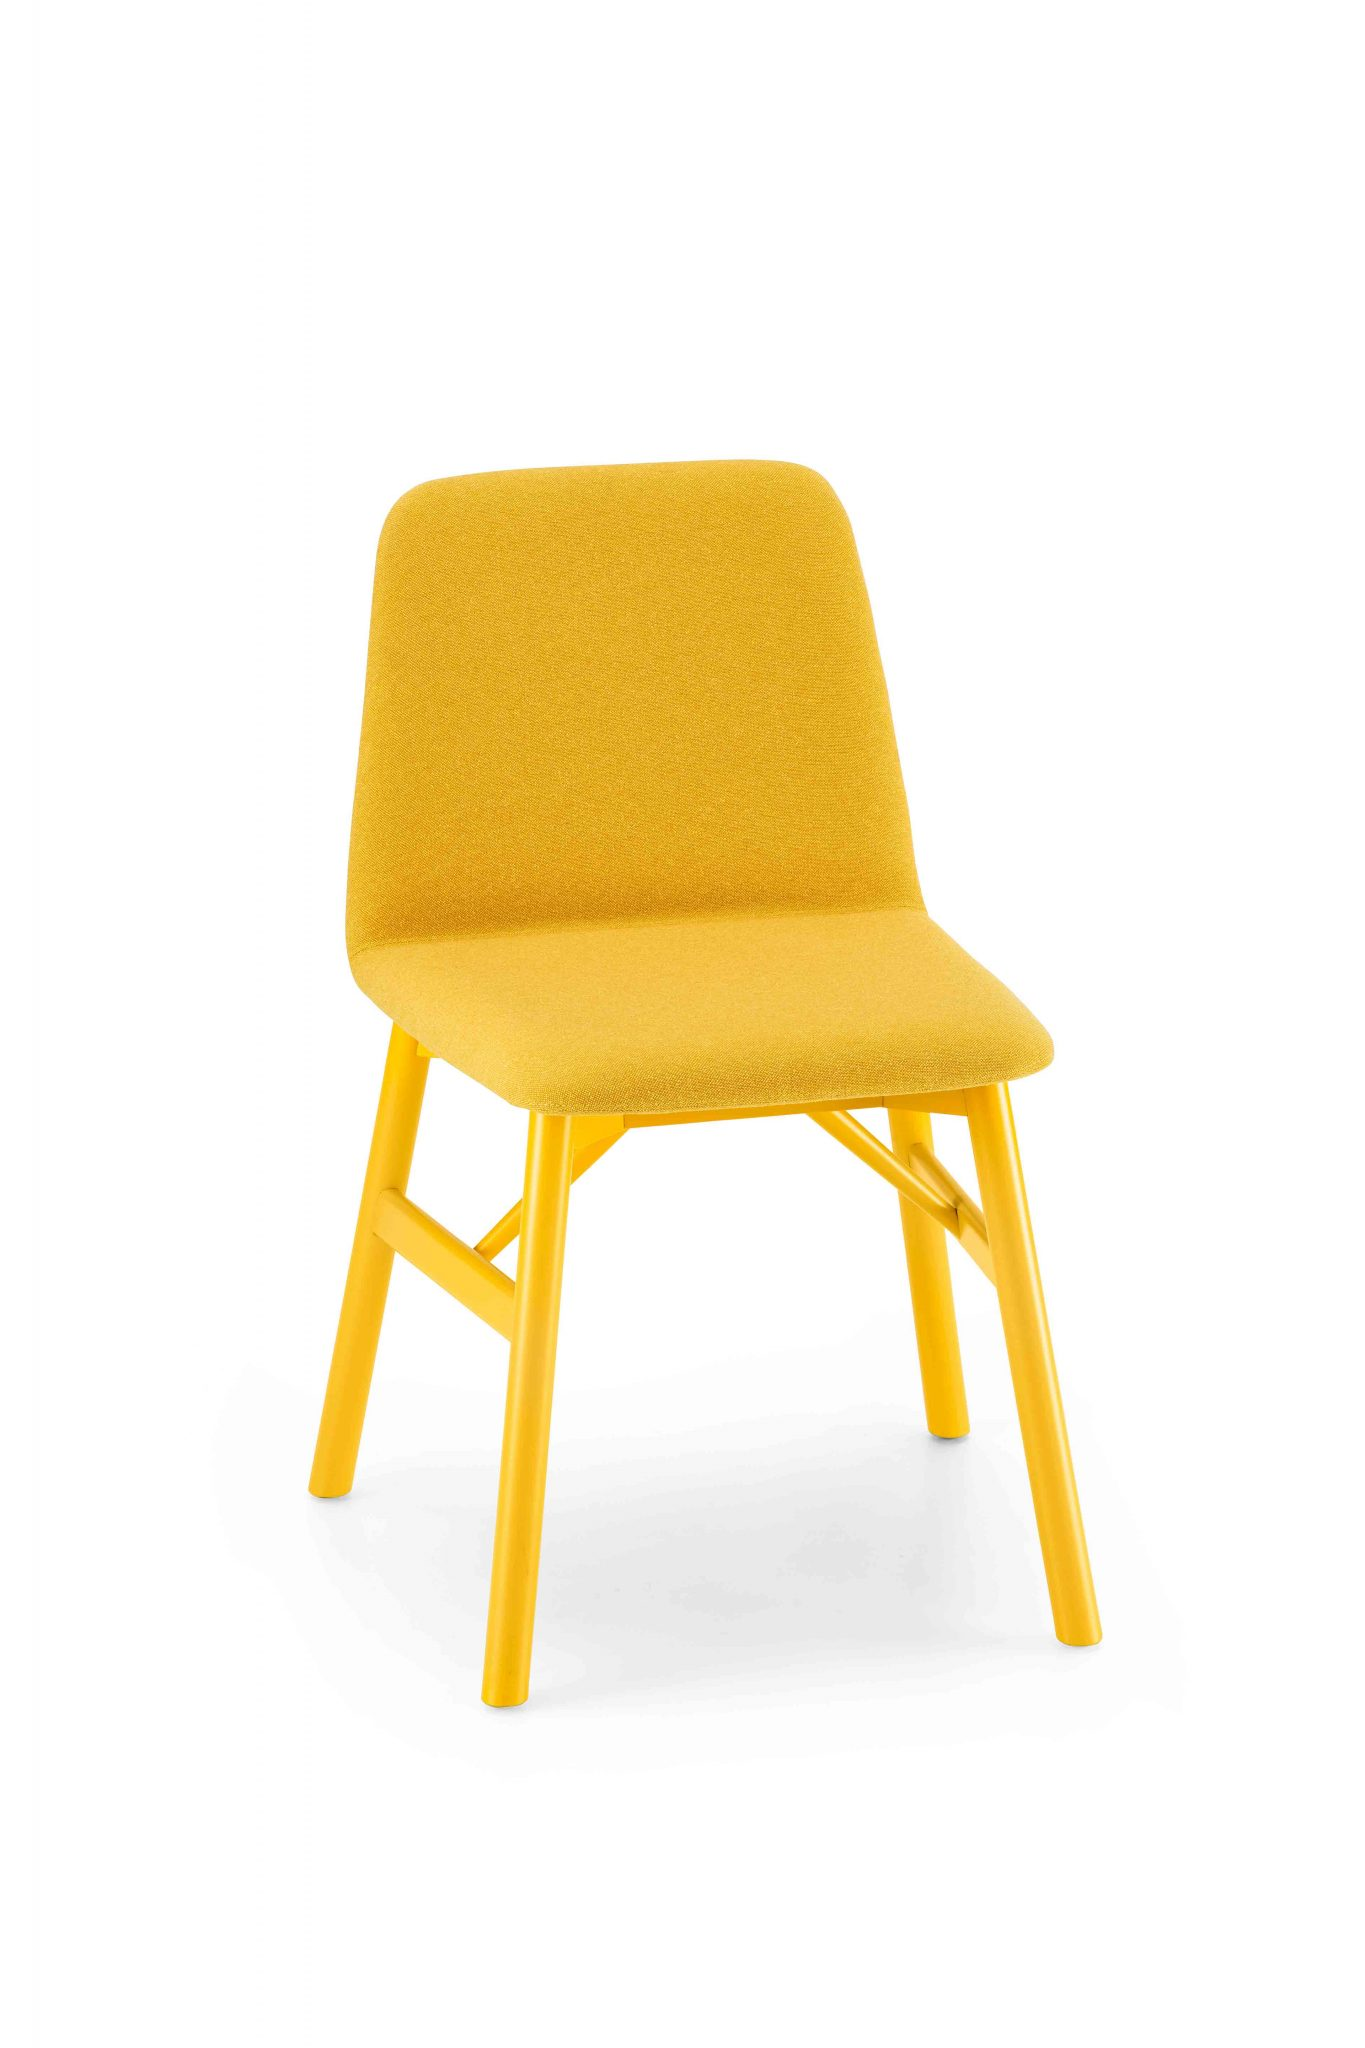 0030-LE-BARDOT-chair-in-beech-painted-and-body-padded,-chair-in-becchwood-painted-and-upholstery-shell-(2)